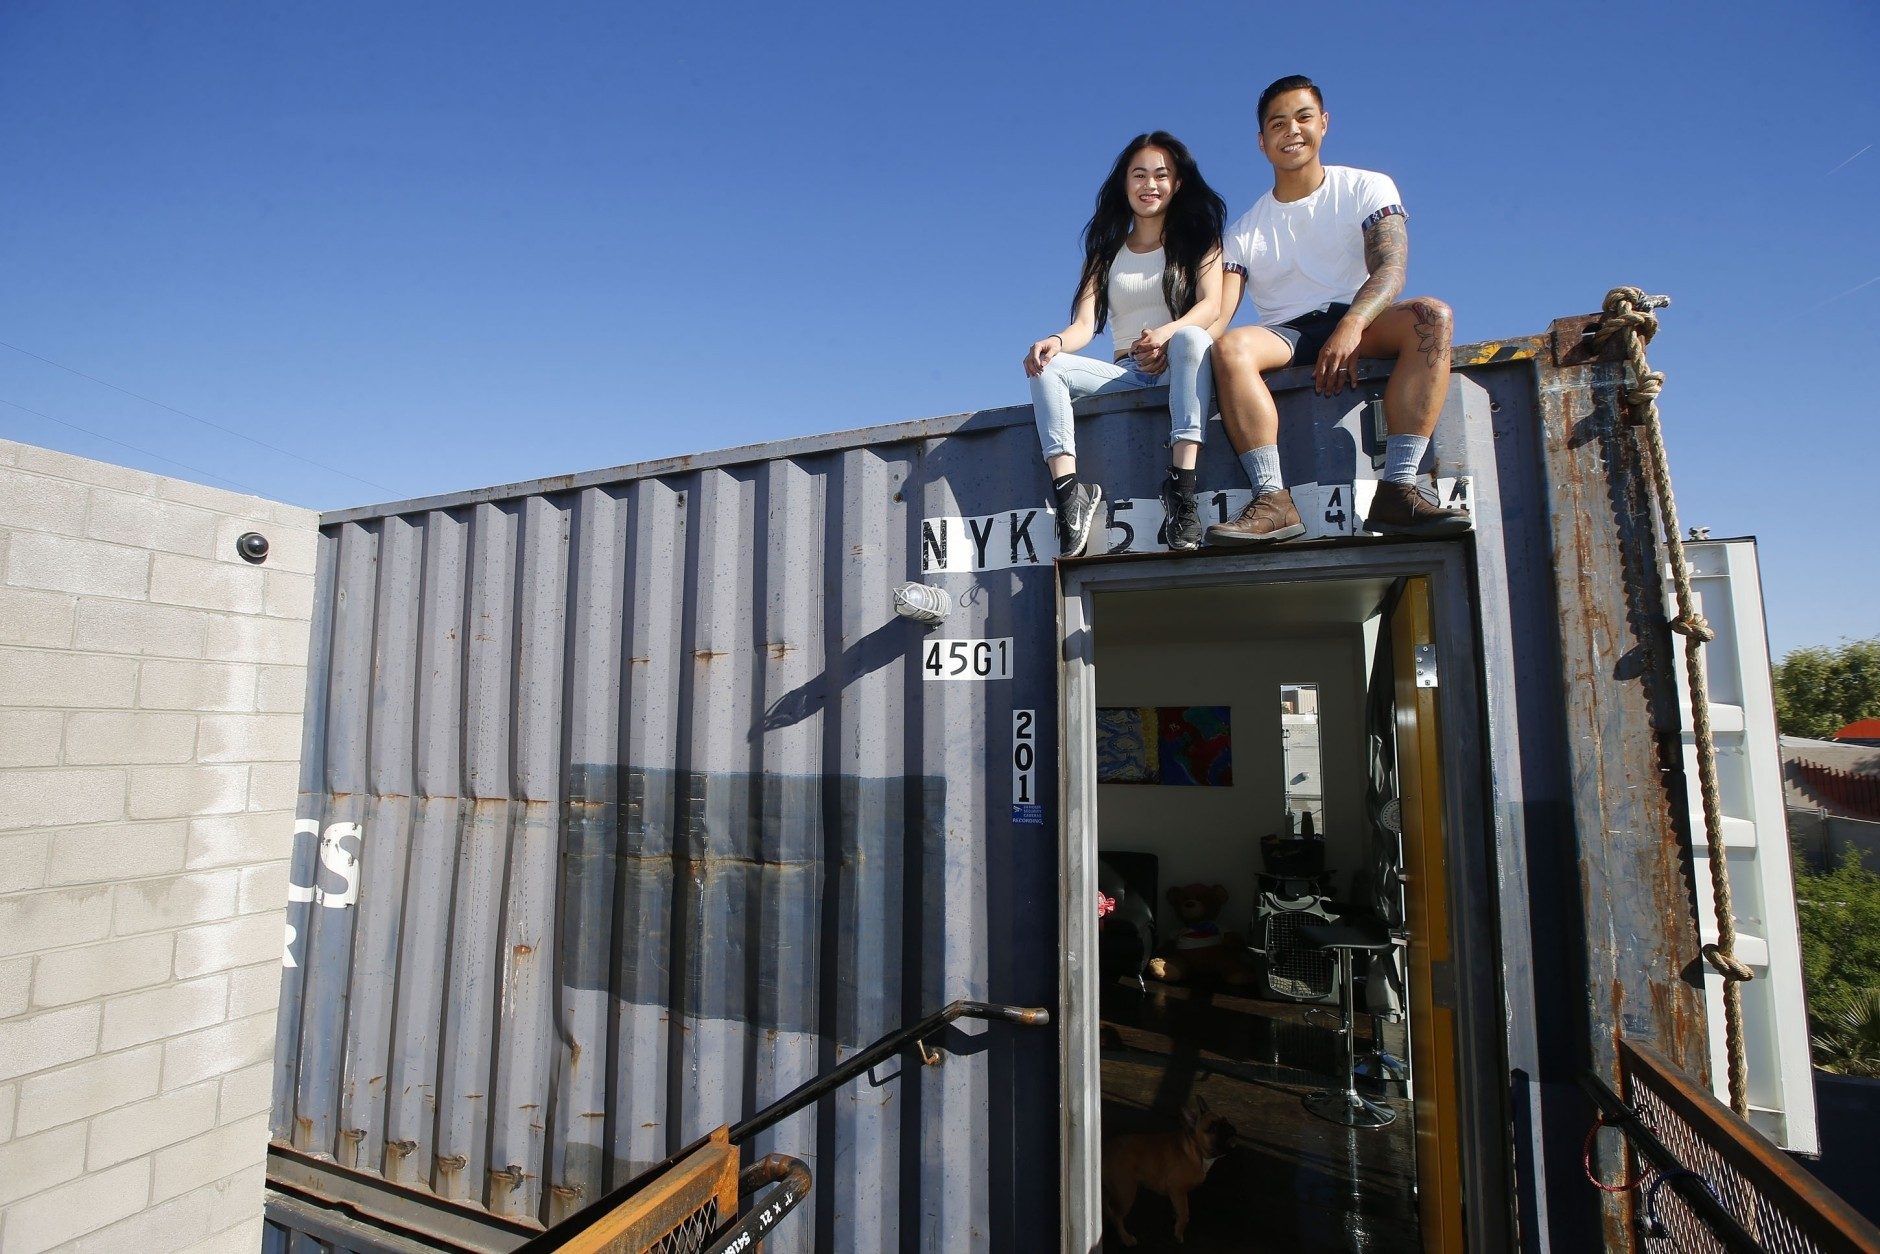 shipping containers offer welcome homes in phoenix | wtop